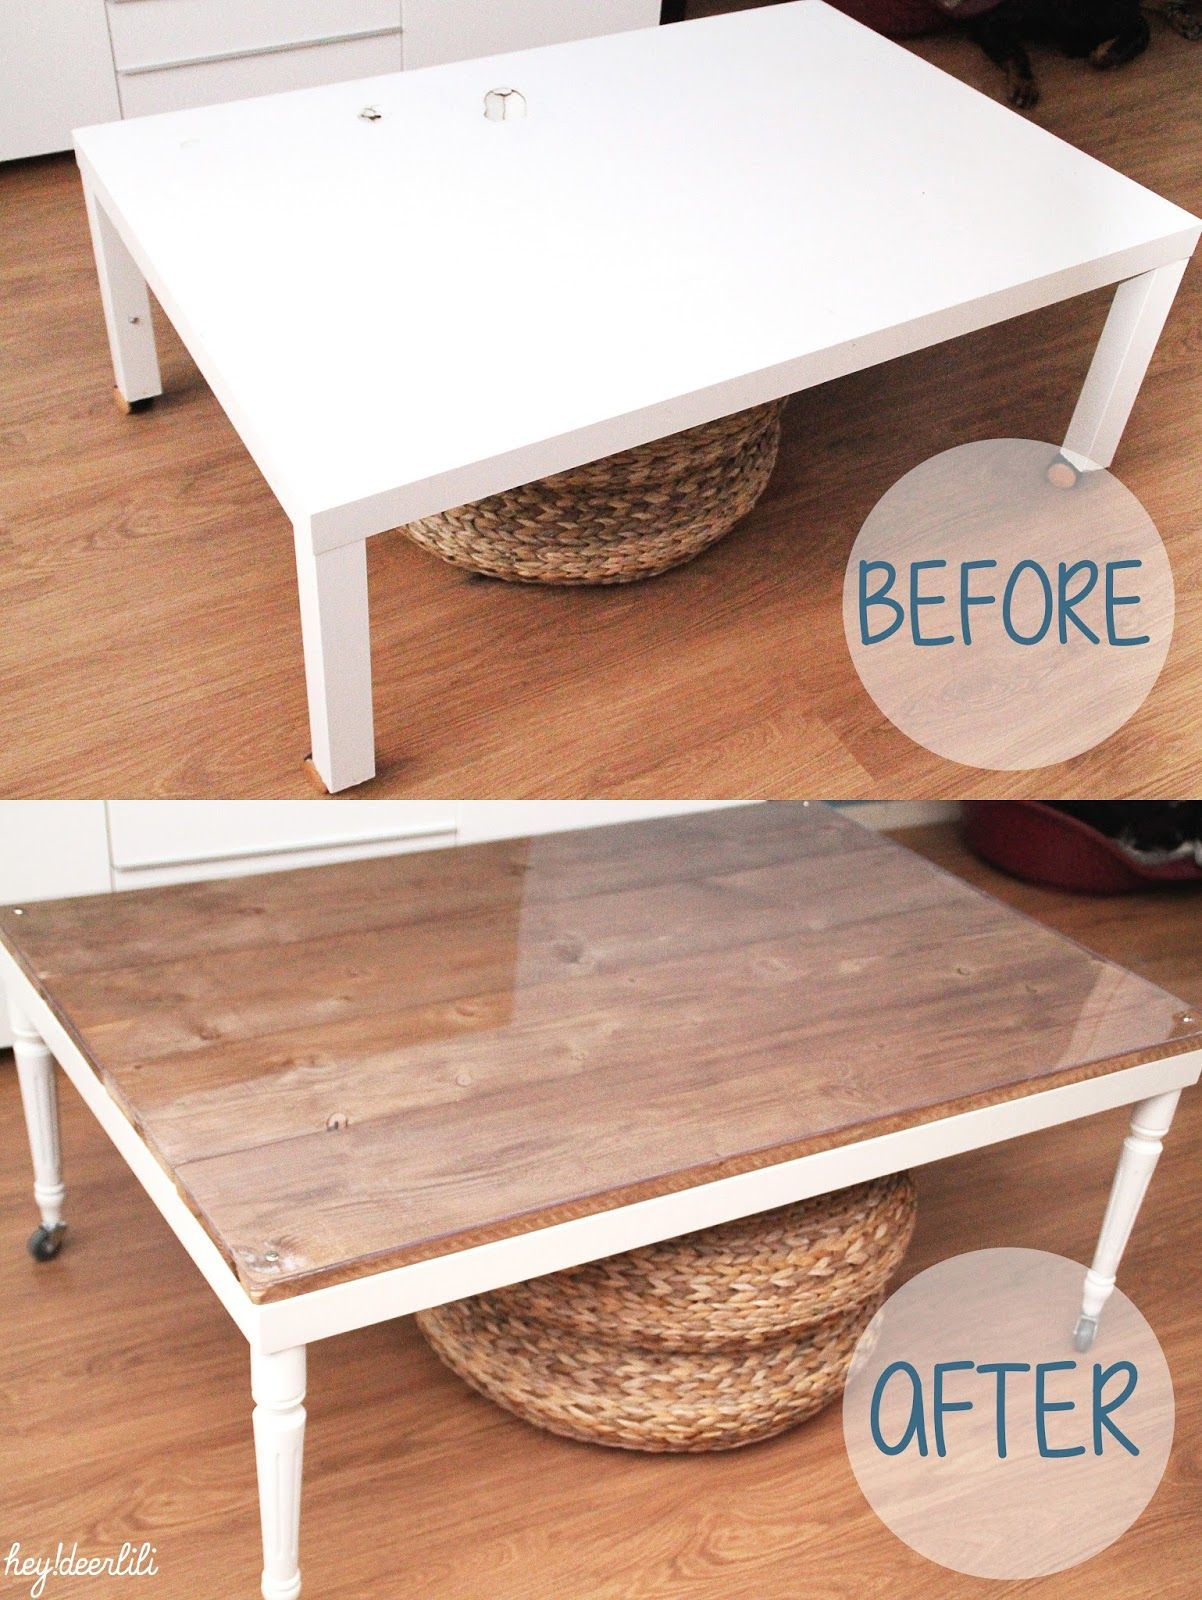 Retaper Un Basique La Table Basse Ikea Table Basse Ikea Table De Ferme Diy Bricolage Table